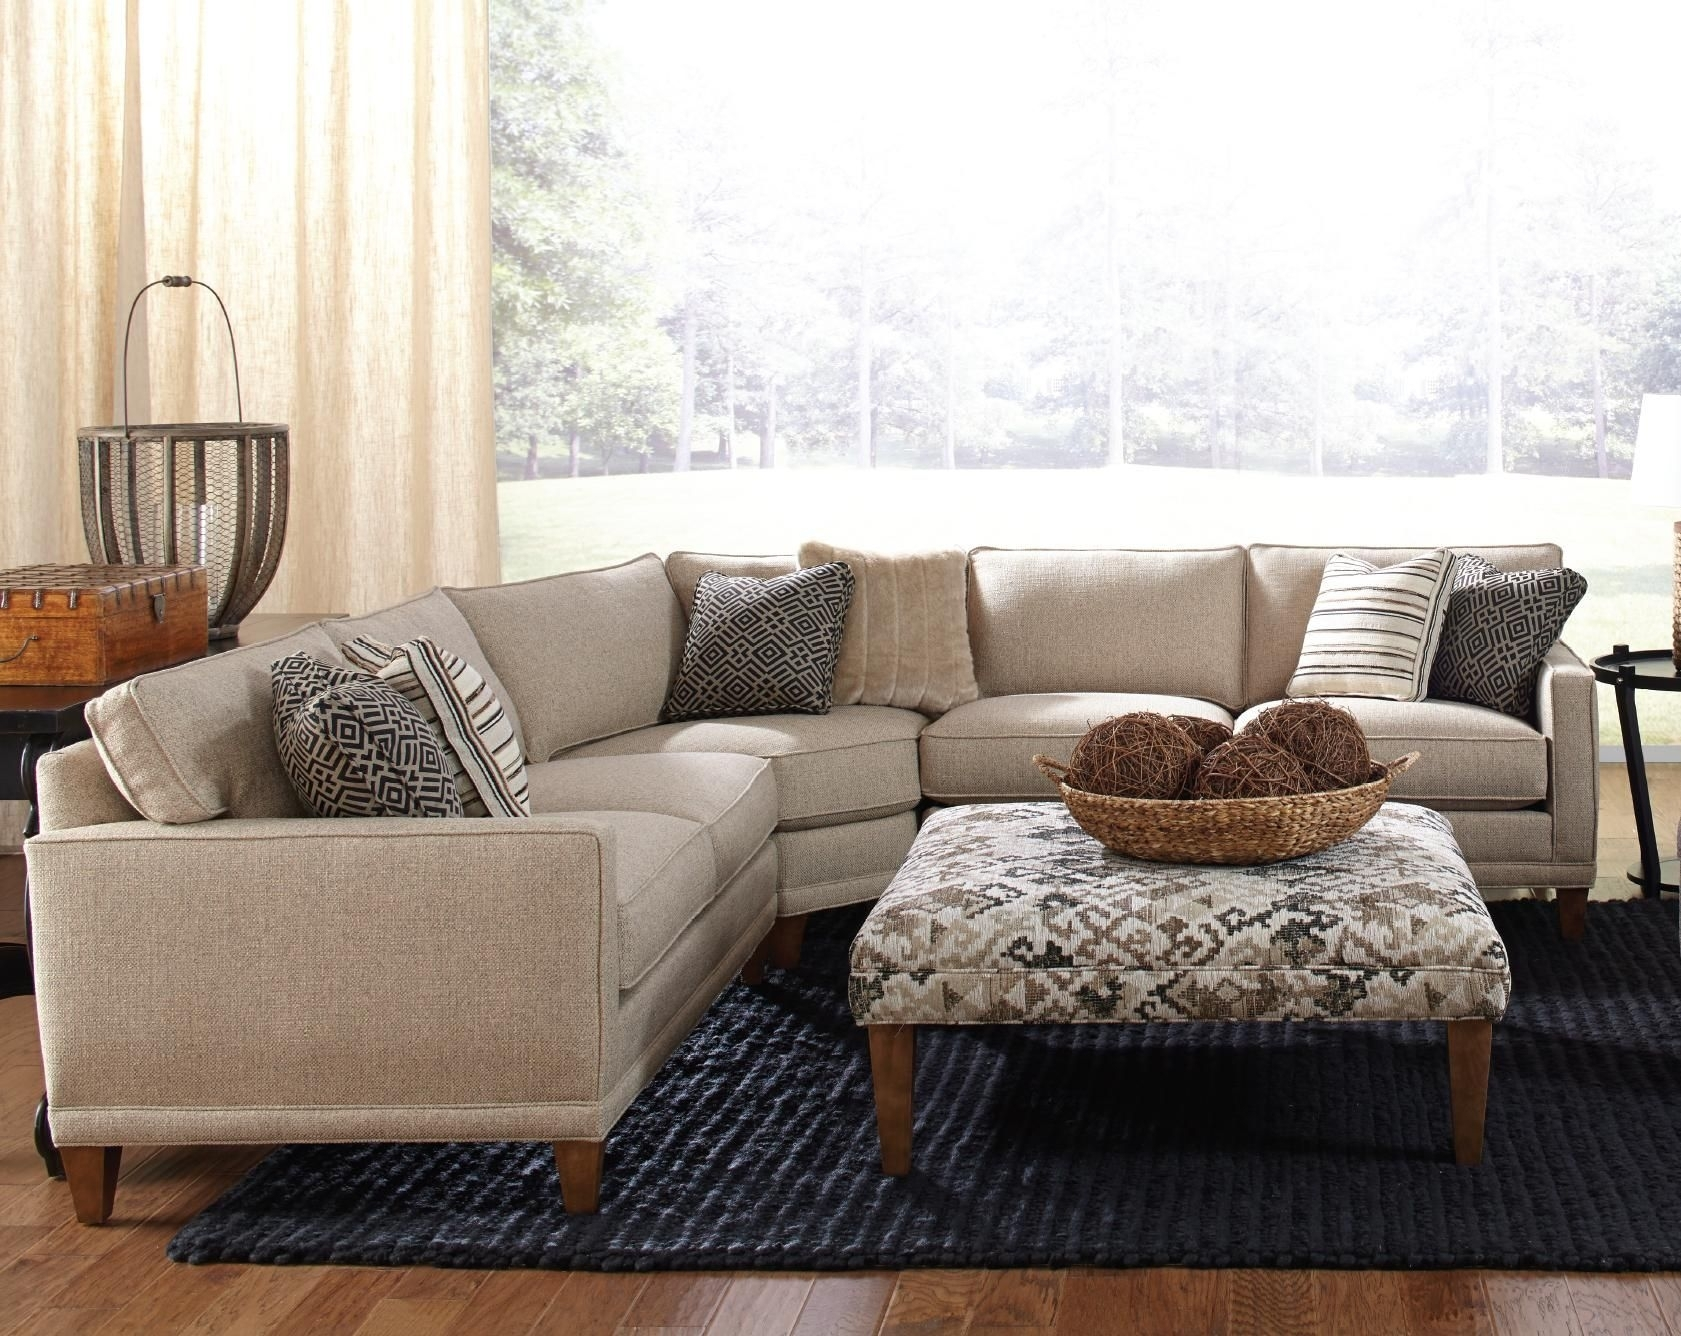 Rowe Townsend Contemporary 3 Piece Sectional Sofa - Sprintz with Blaine 3 Piece Sectionals (Image 25 of 30)